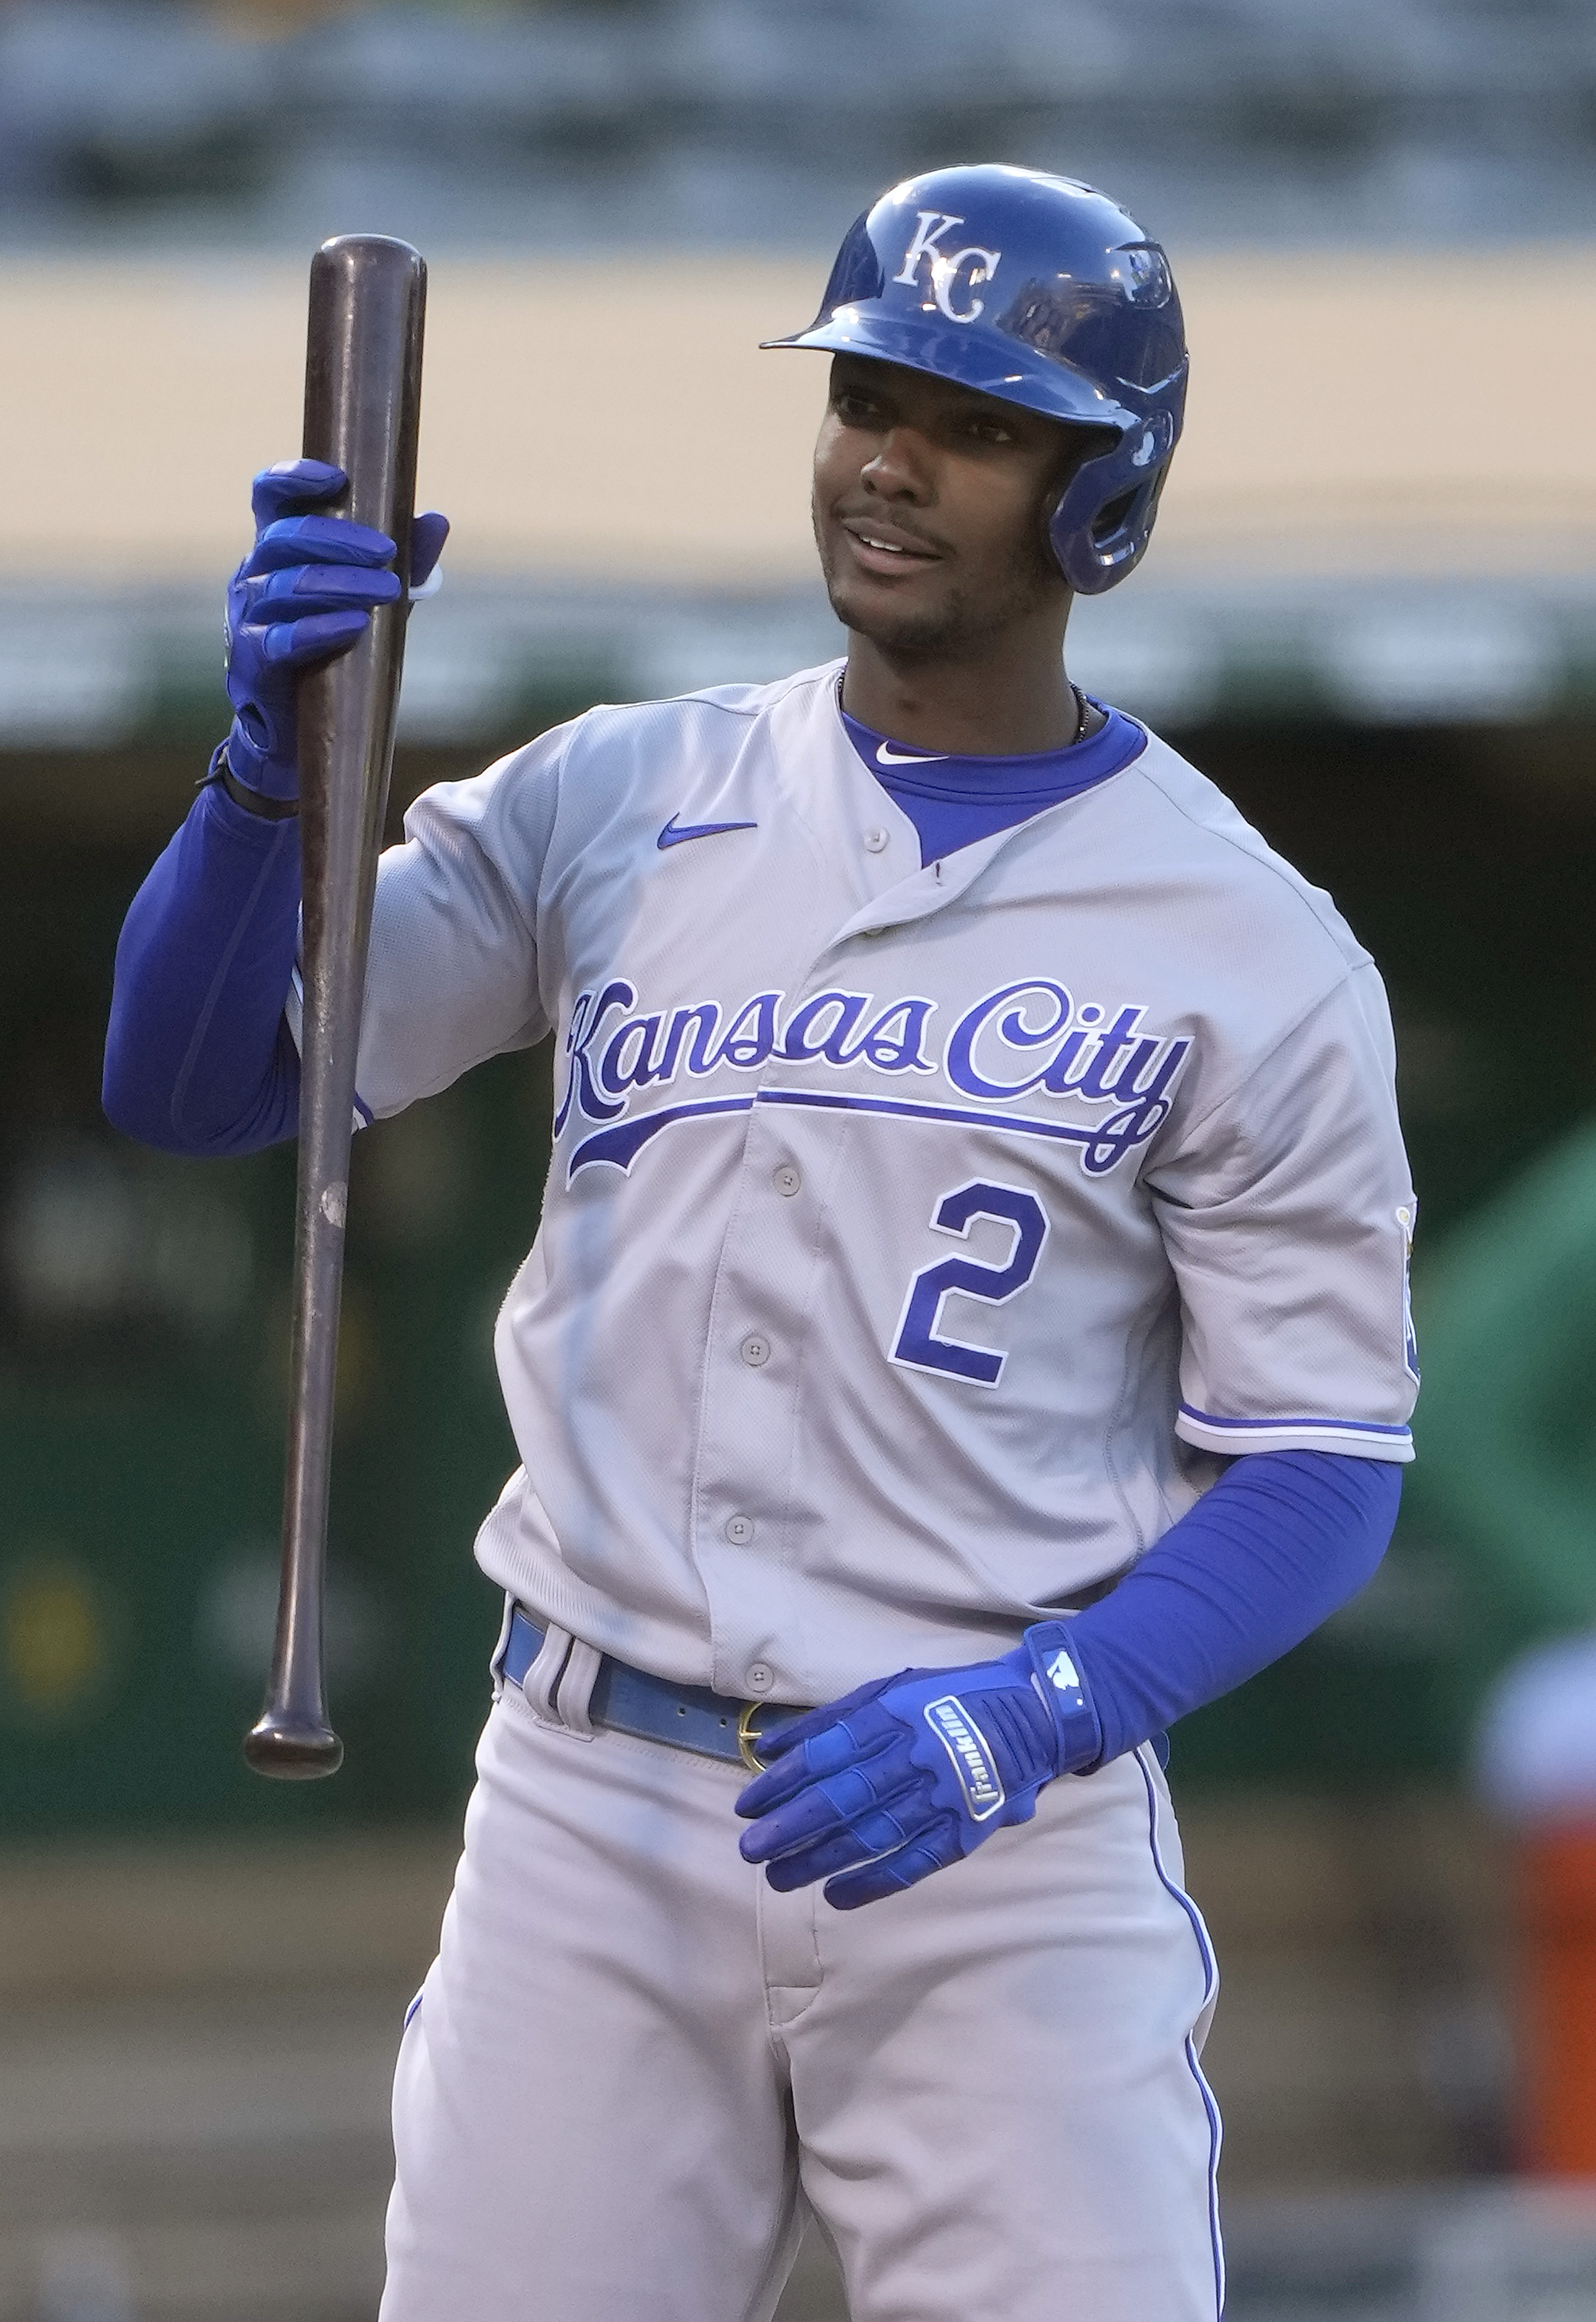 Michael A. Taylor #2 of the Kansas City Royals reacts to a called third strike against the Oakland Athletics in the top of the second inning at RingCentral Coliseum on June 10, 2021 in Oakland, California.